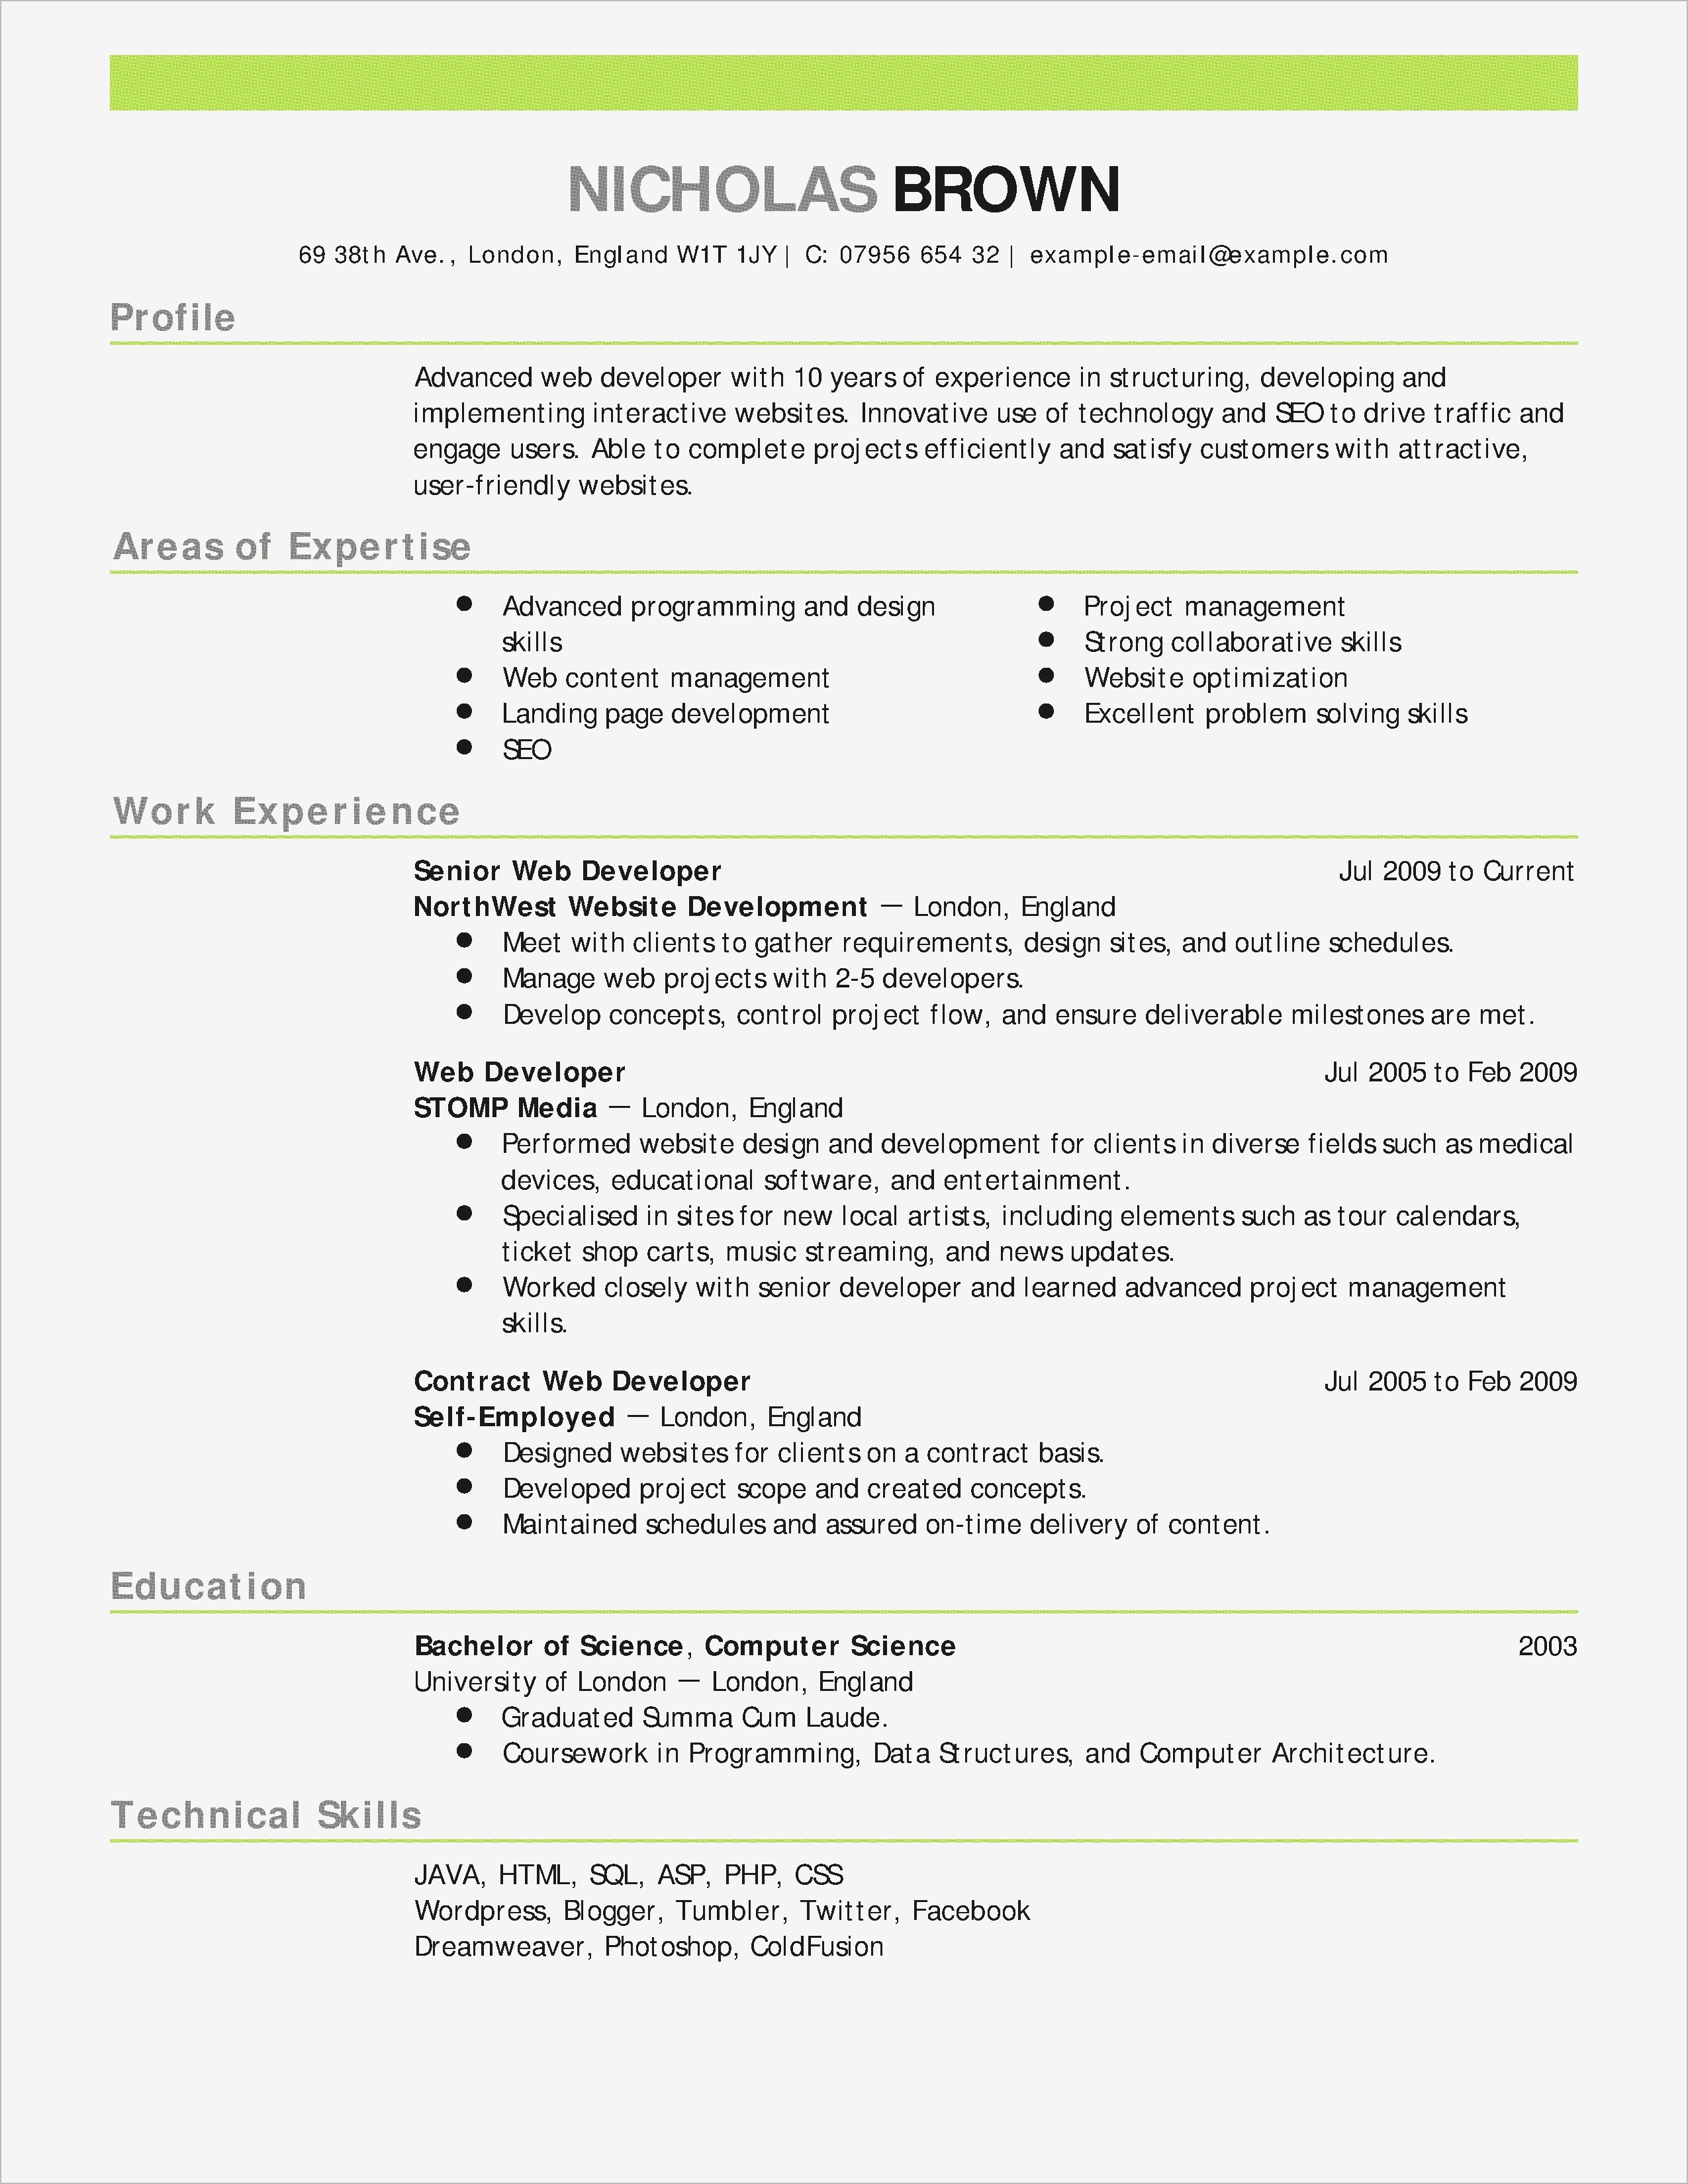 Legal Resumes and Cover Letters - Legal Cover Letter Template Gallery